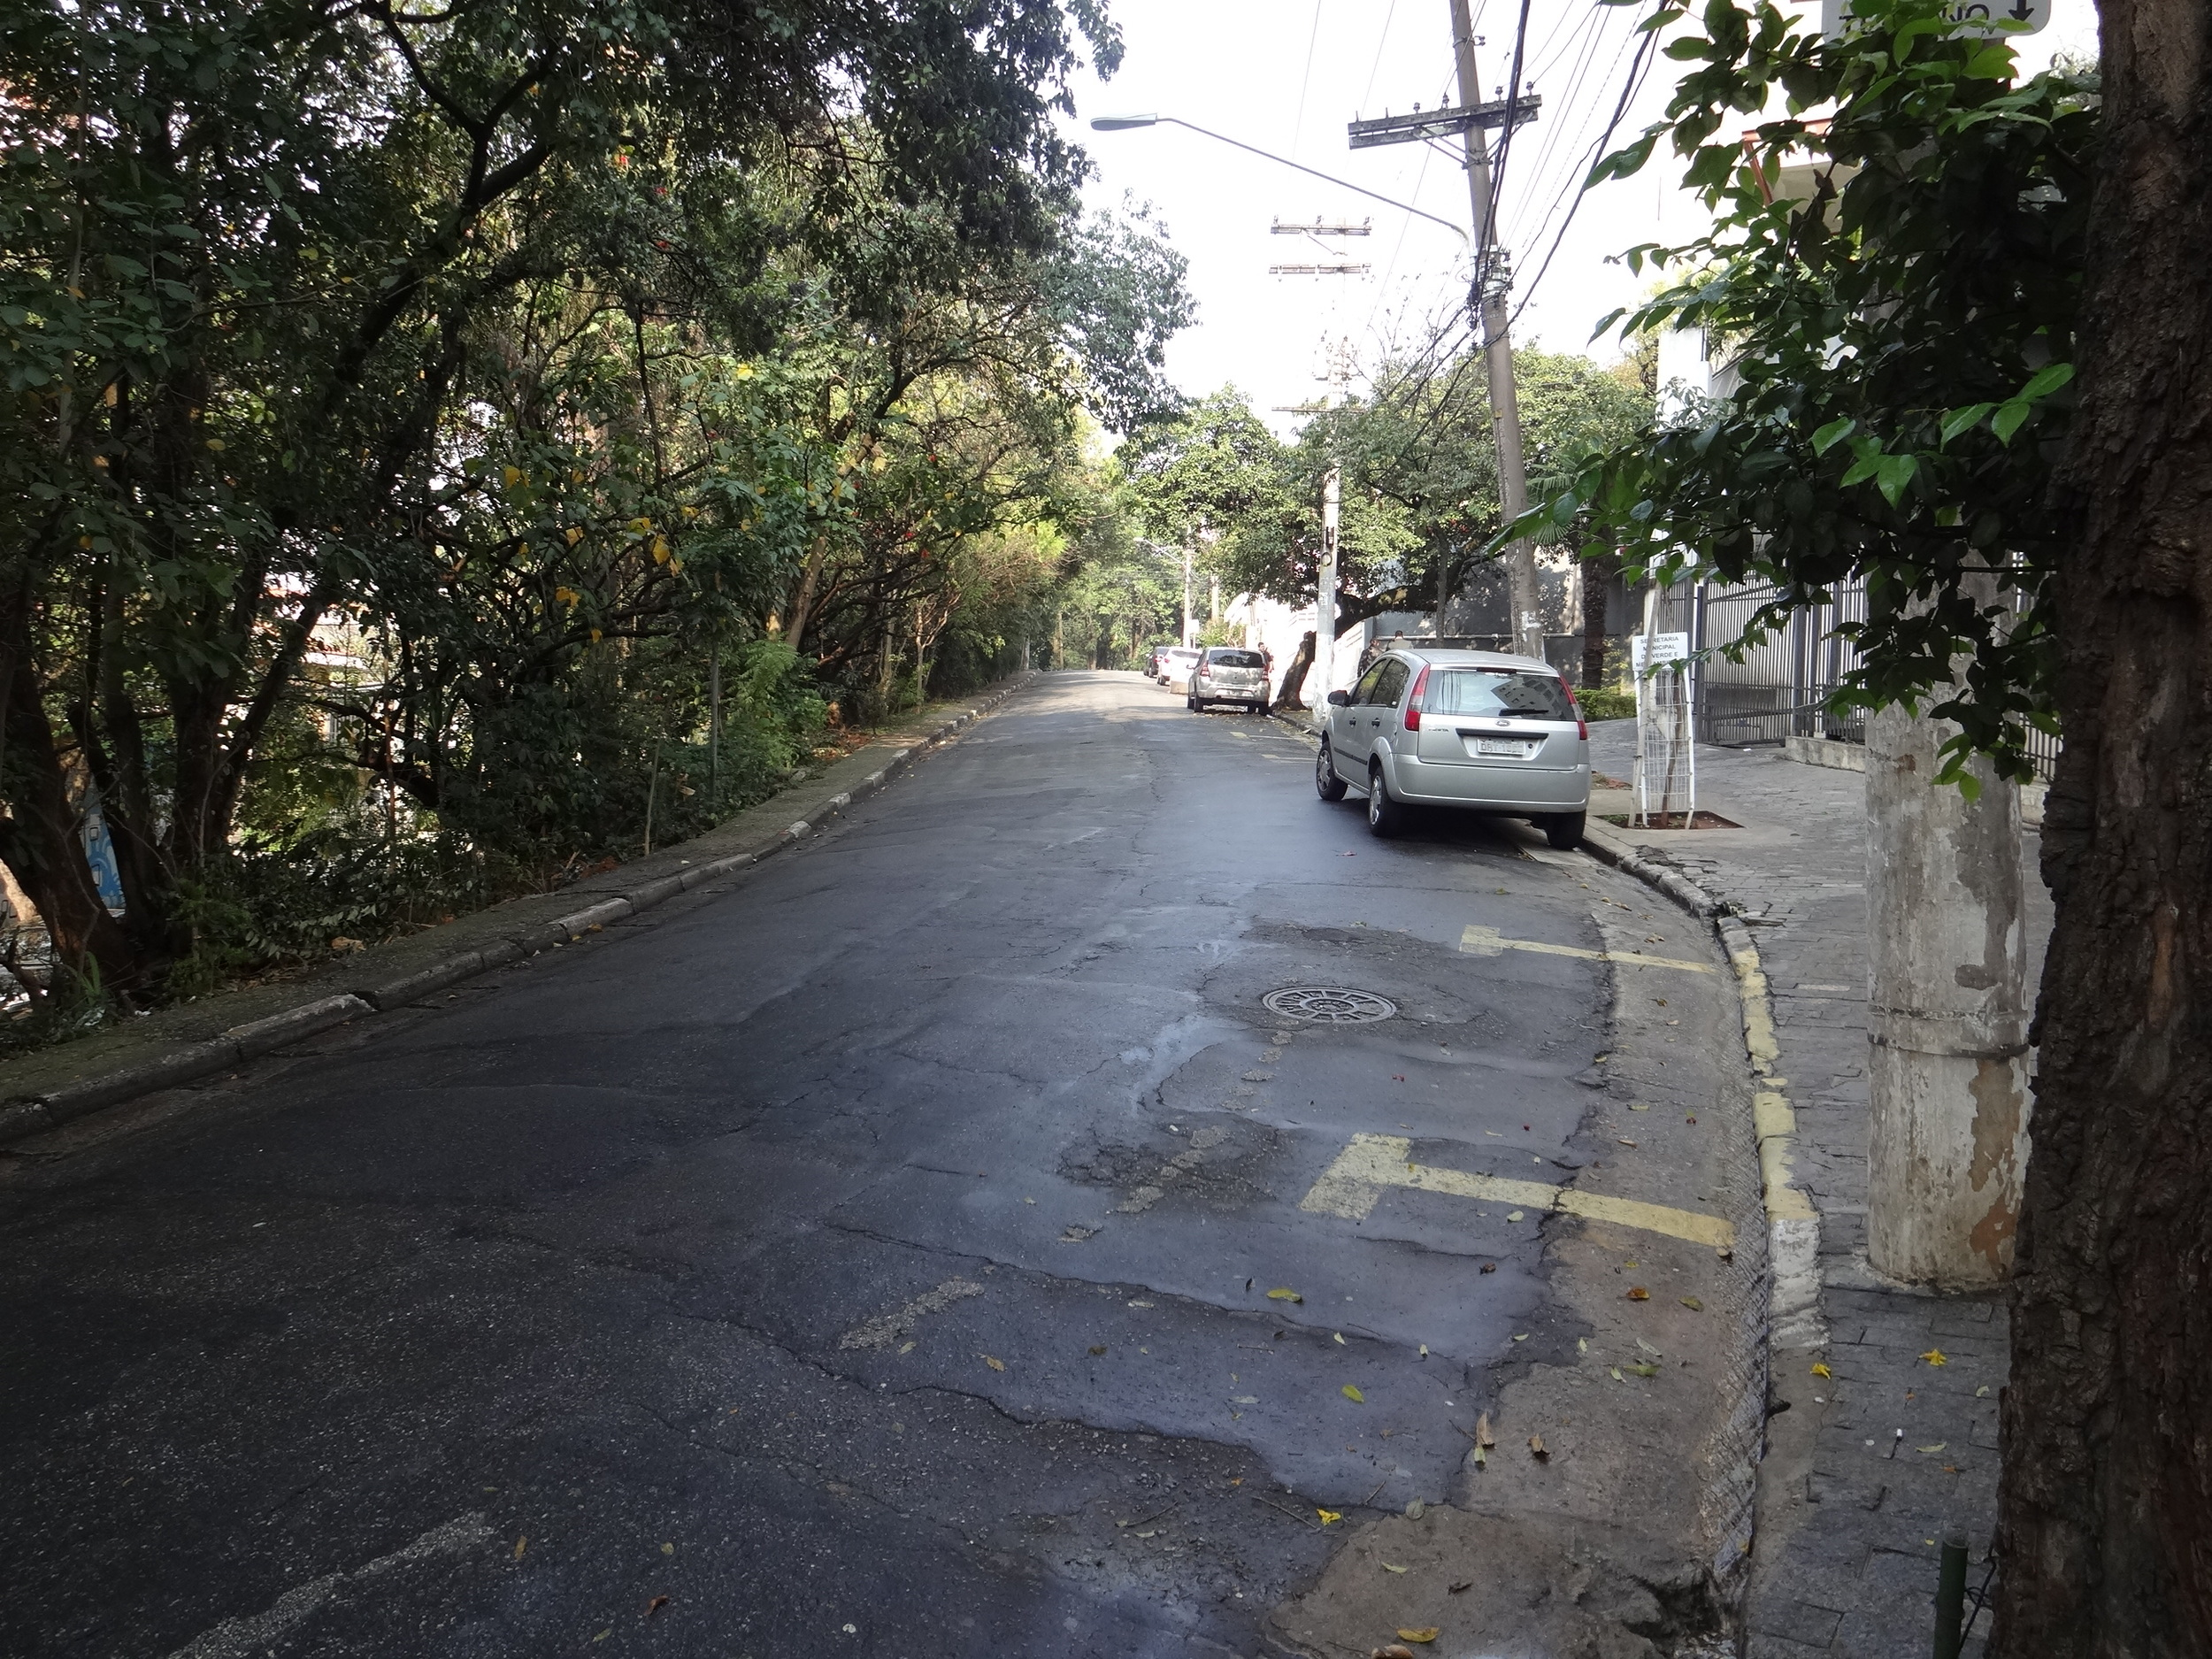 A typical street in Vila Madalena and about a 5 minute walk from my hostel.